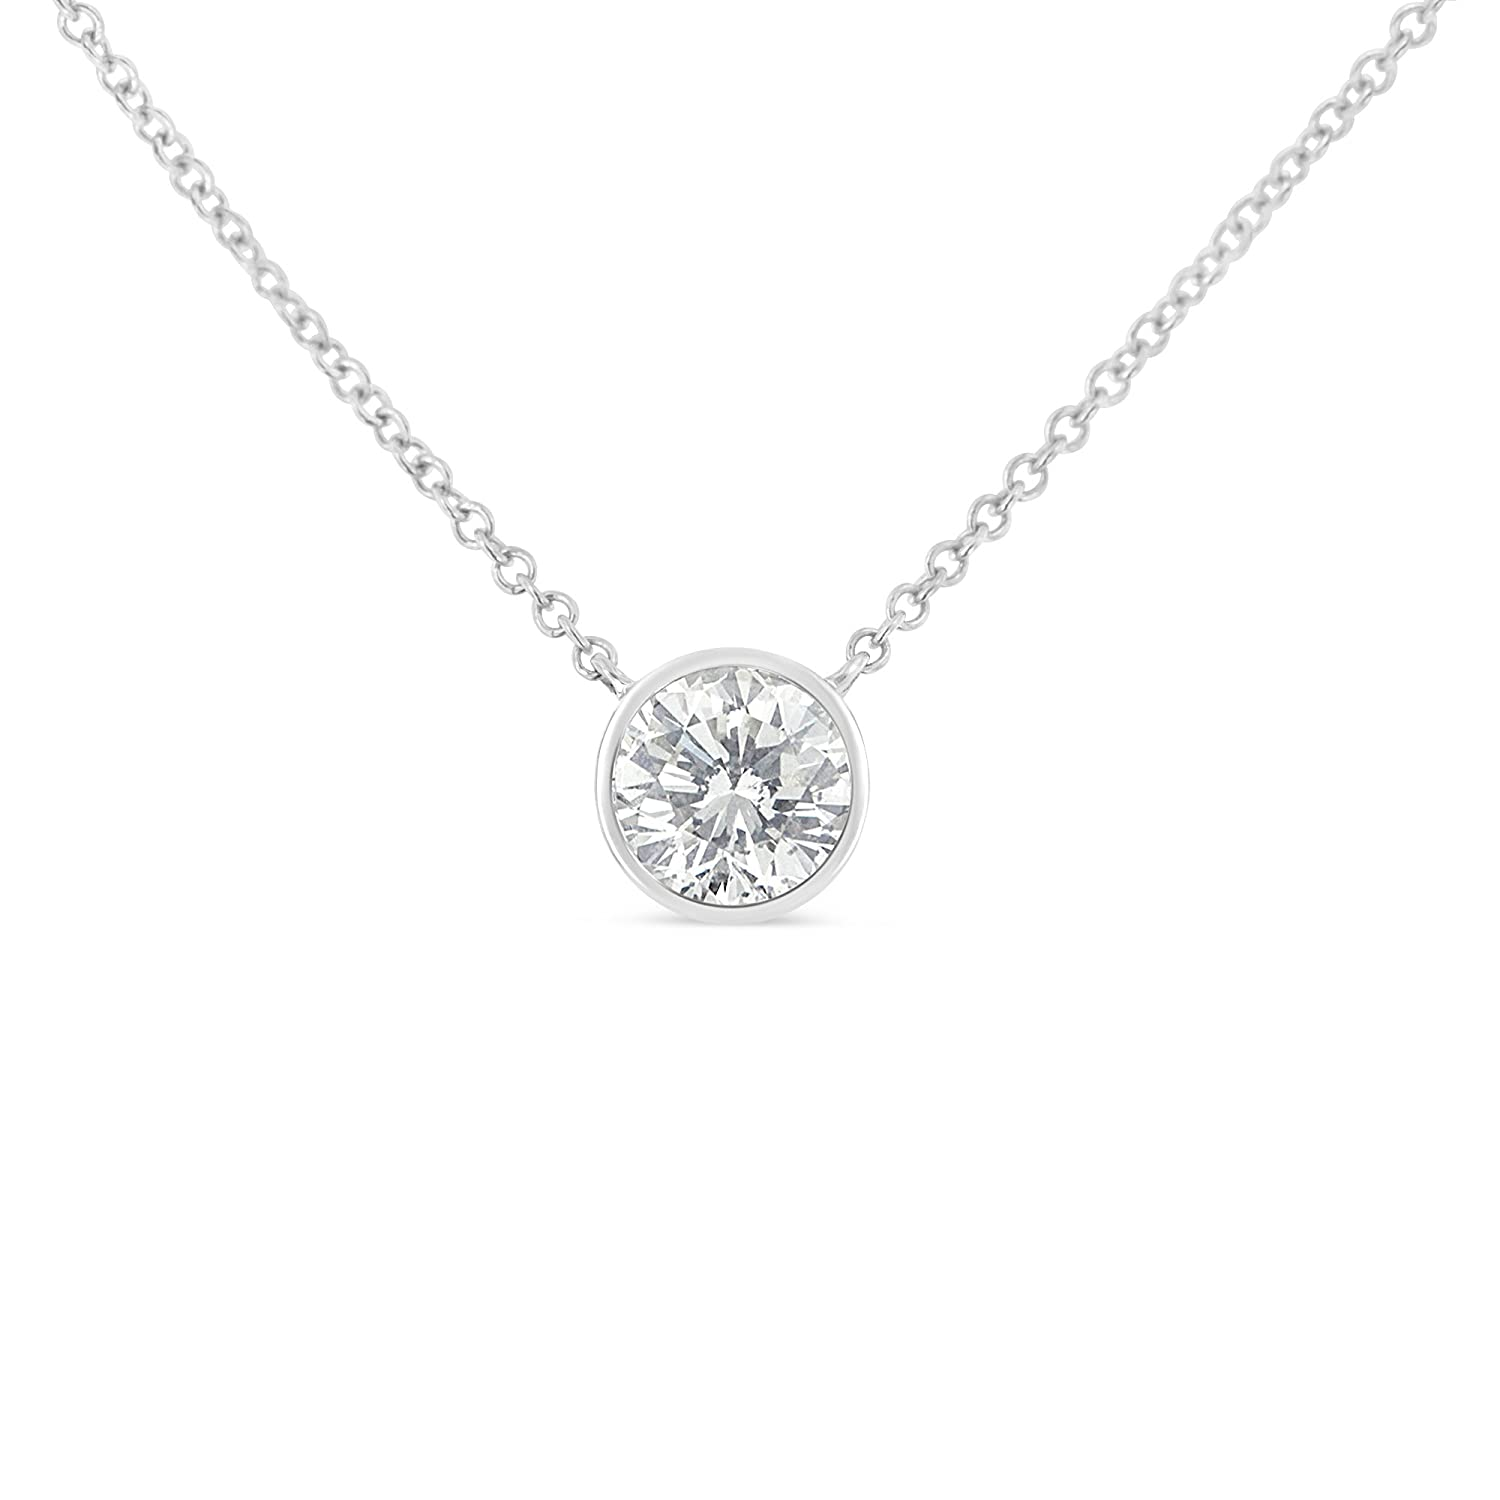 logo h necklace brilliant diamond inch chain round products tiffany solitaire co pendant